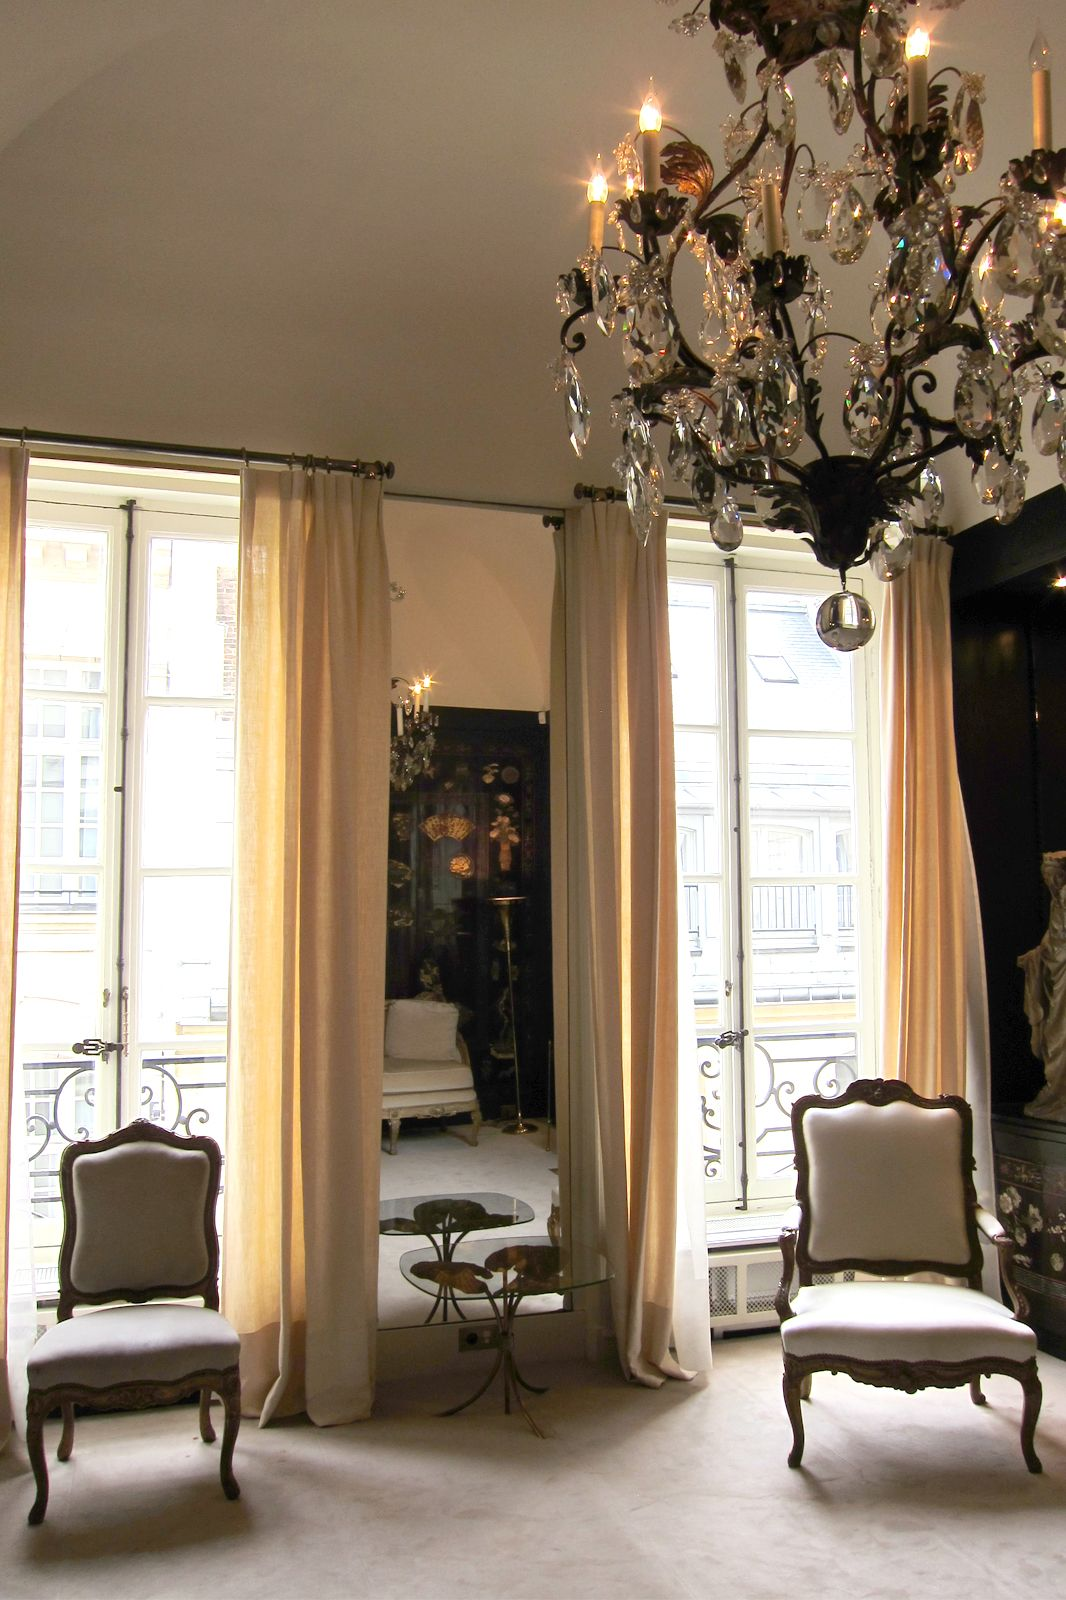 Appartement Coco Chanel Idees